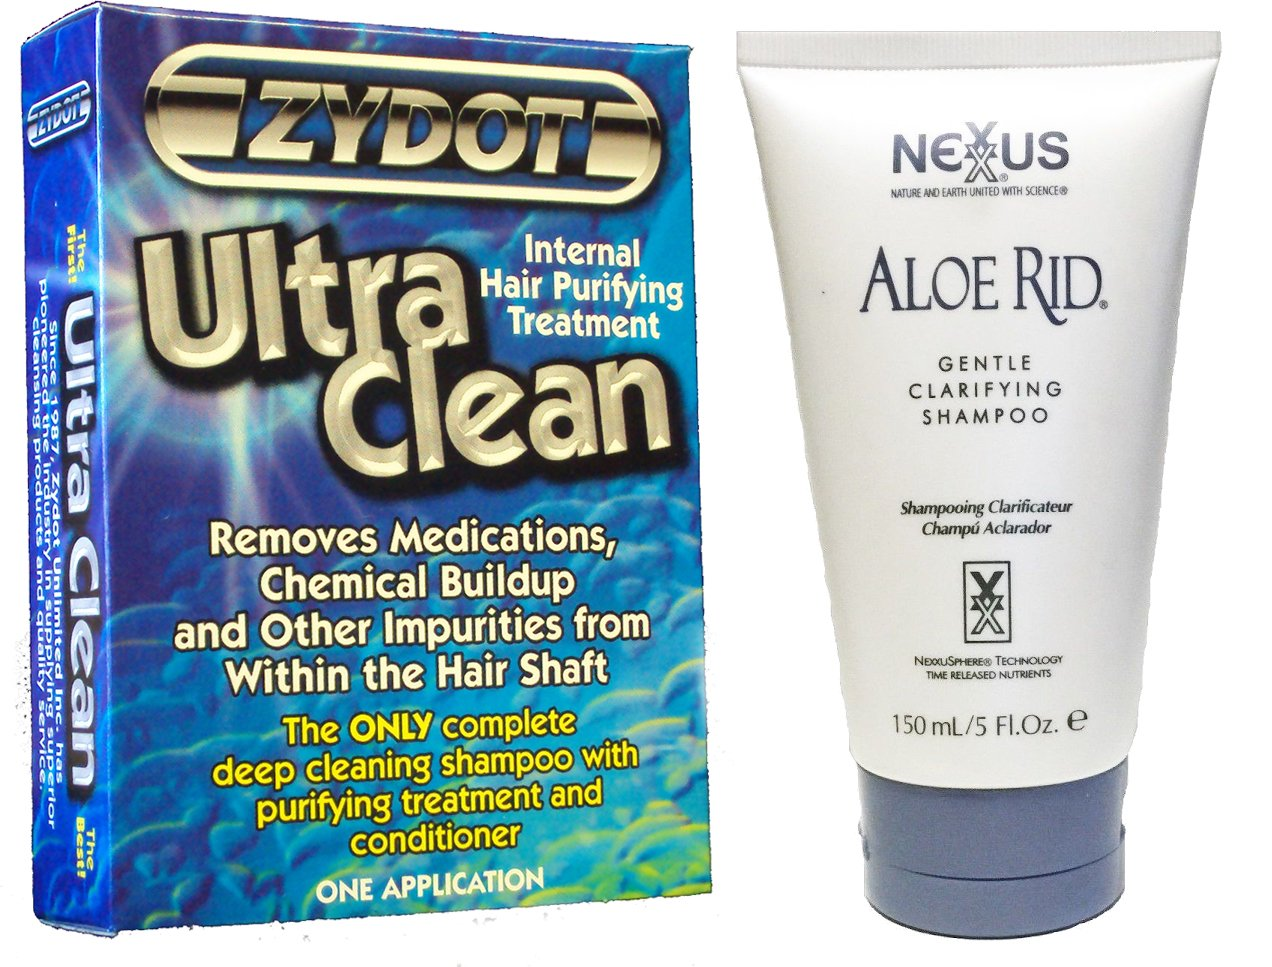 Nexxus Aloe Rid Clarifying Shampoo with Zydot Ultra Clean Shampoo by Nexxus